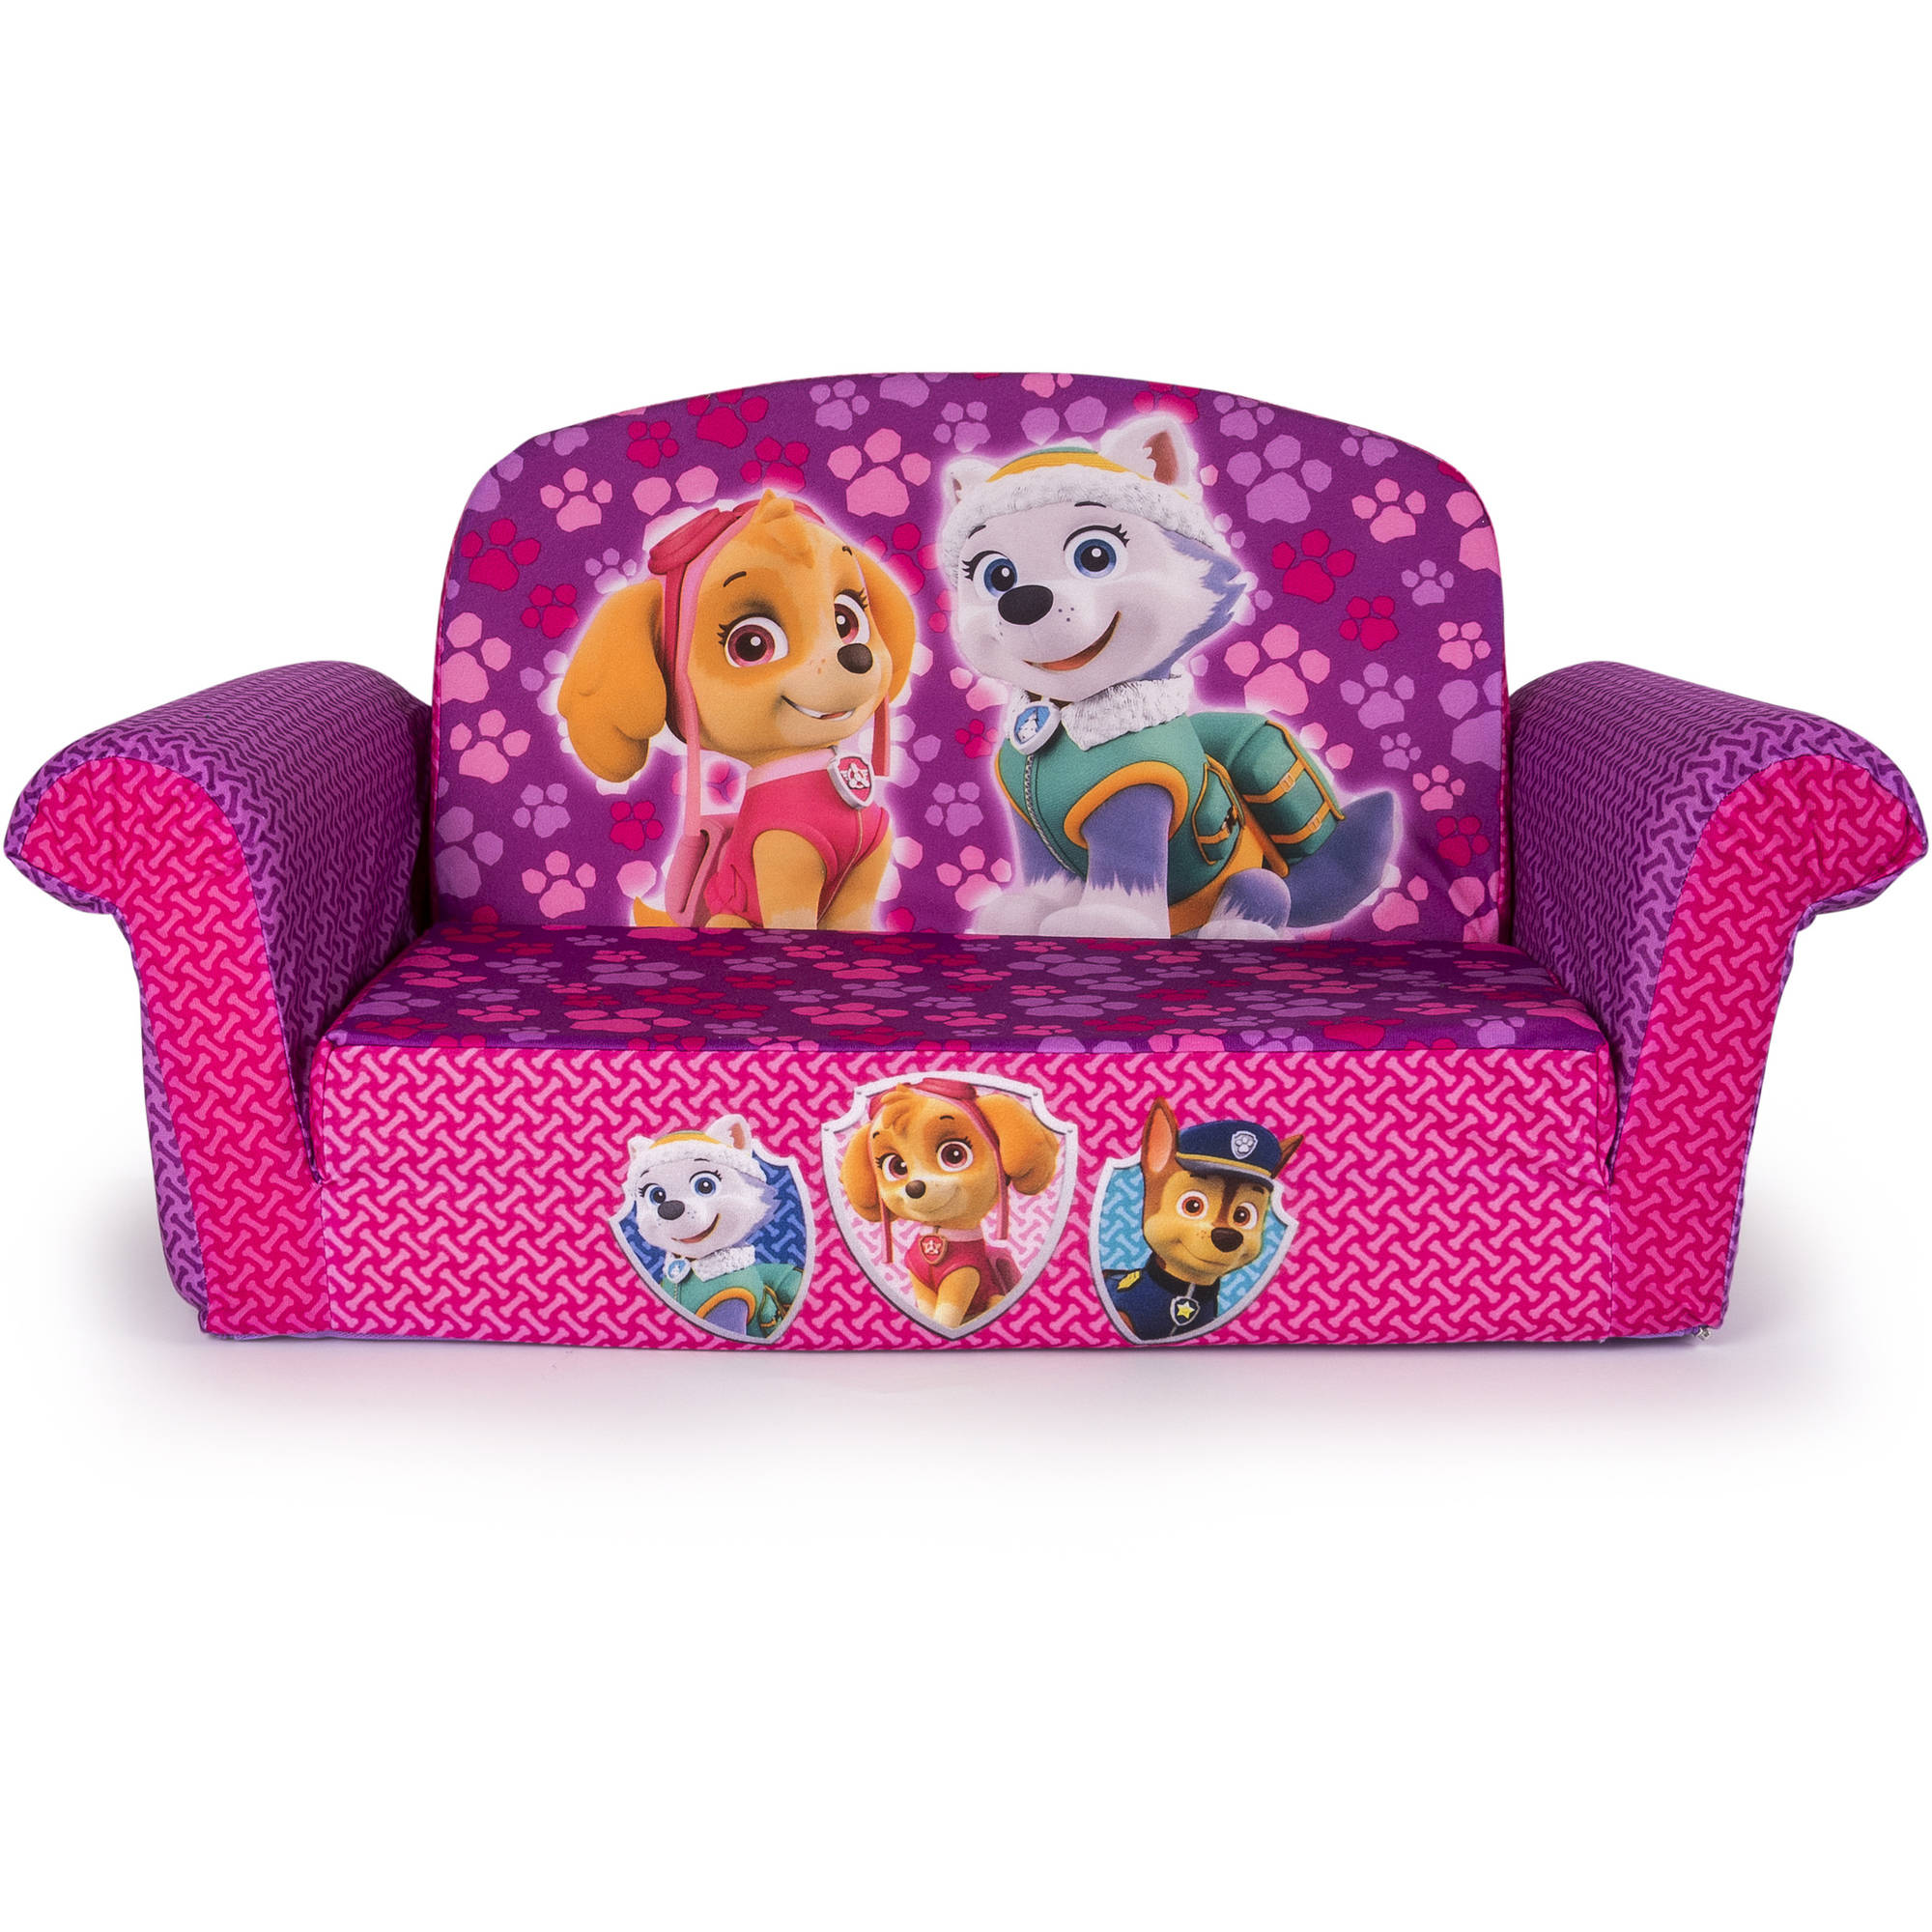 High Quality Marshmallow 2 In 1 Flip Open Sofa, Paw Patrol Pink Edition   Walmart.com